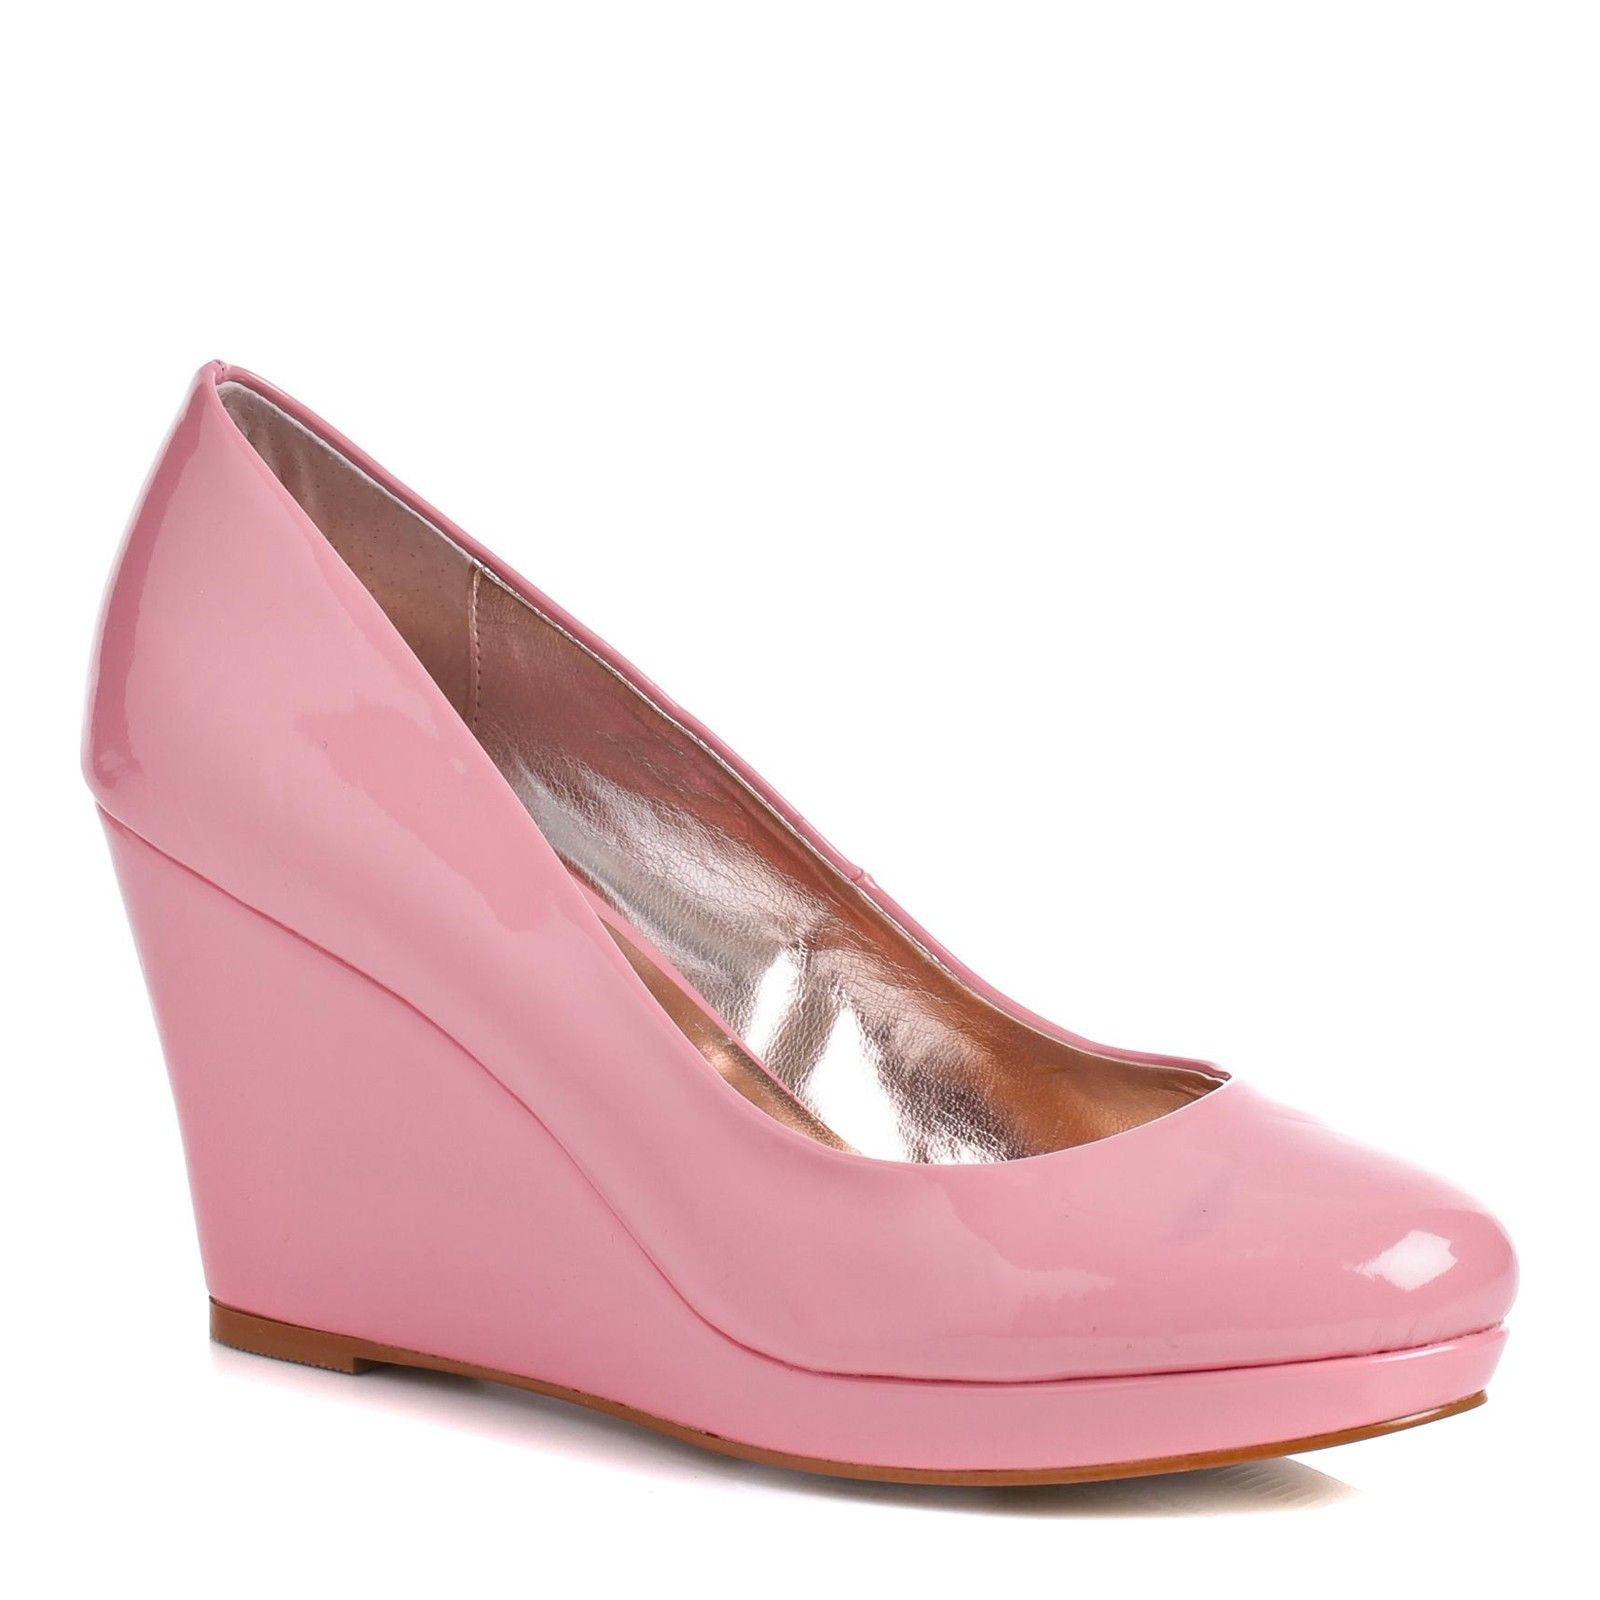 8f98ee51600 Pink Oker Patent Wedges Shoes 9cm Heel - Women - Outlet